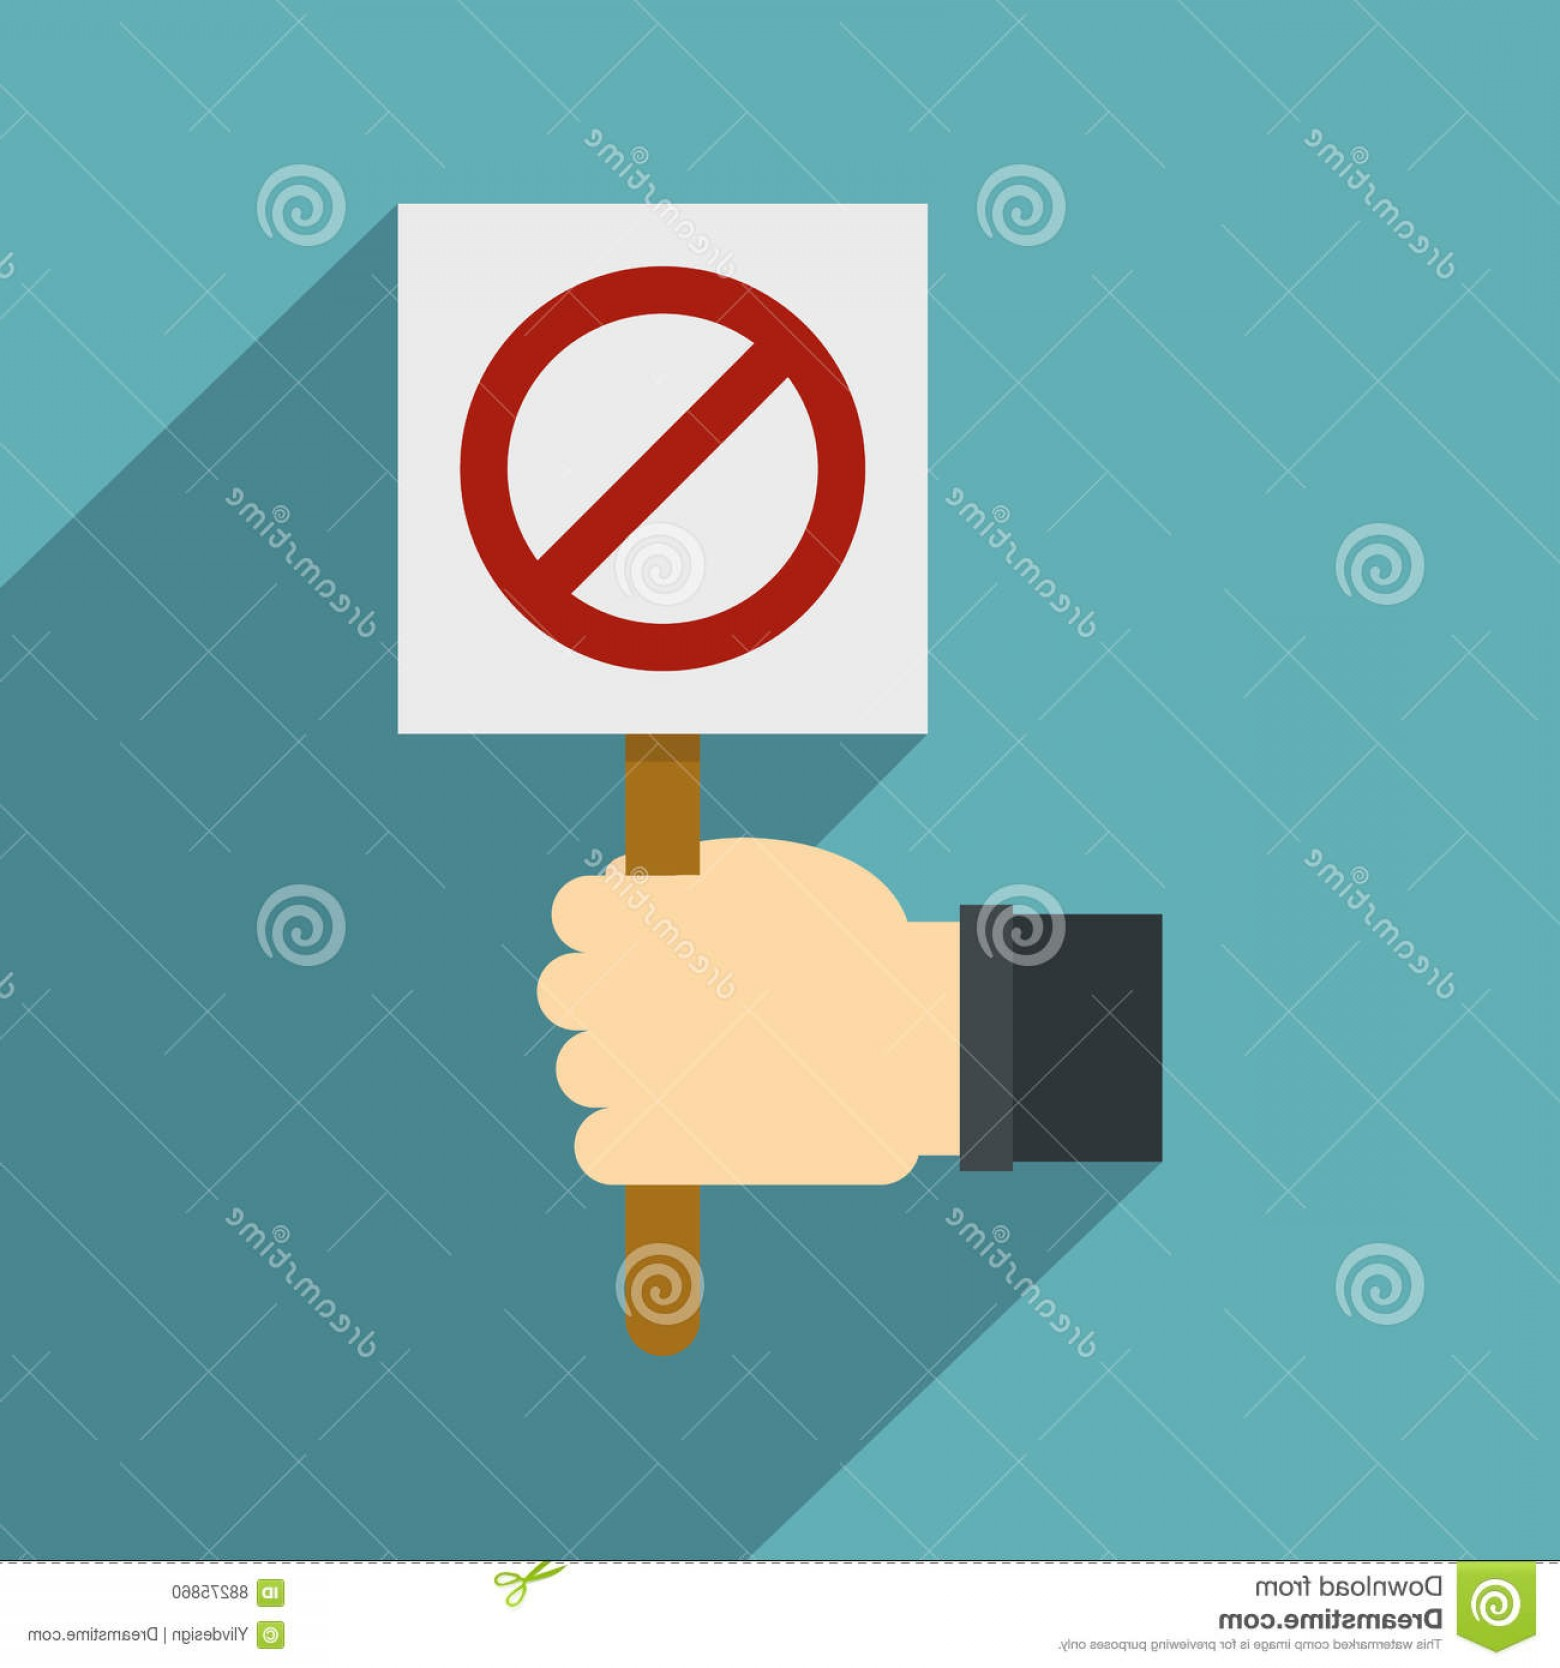 Hand Stop Vector Teal: Stock Illustration Hand Holding Stop Sign Icon Flat Style Illustration Vector Web Isolated Baby Blue Background Image